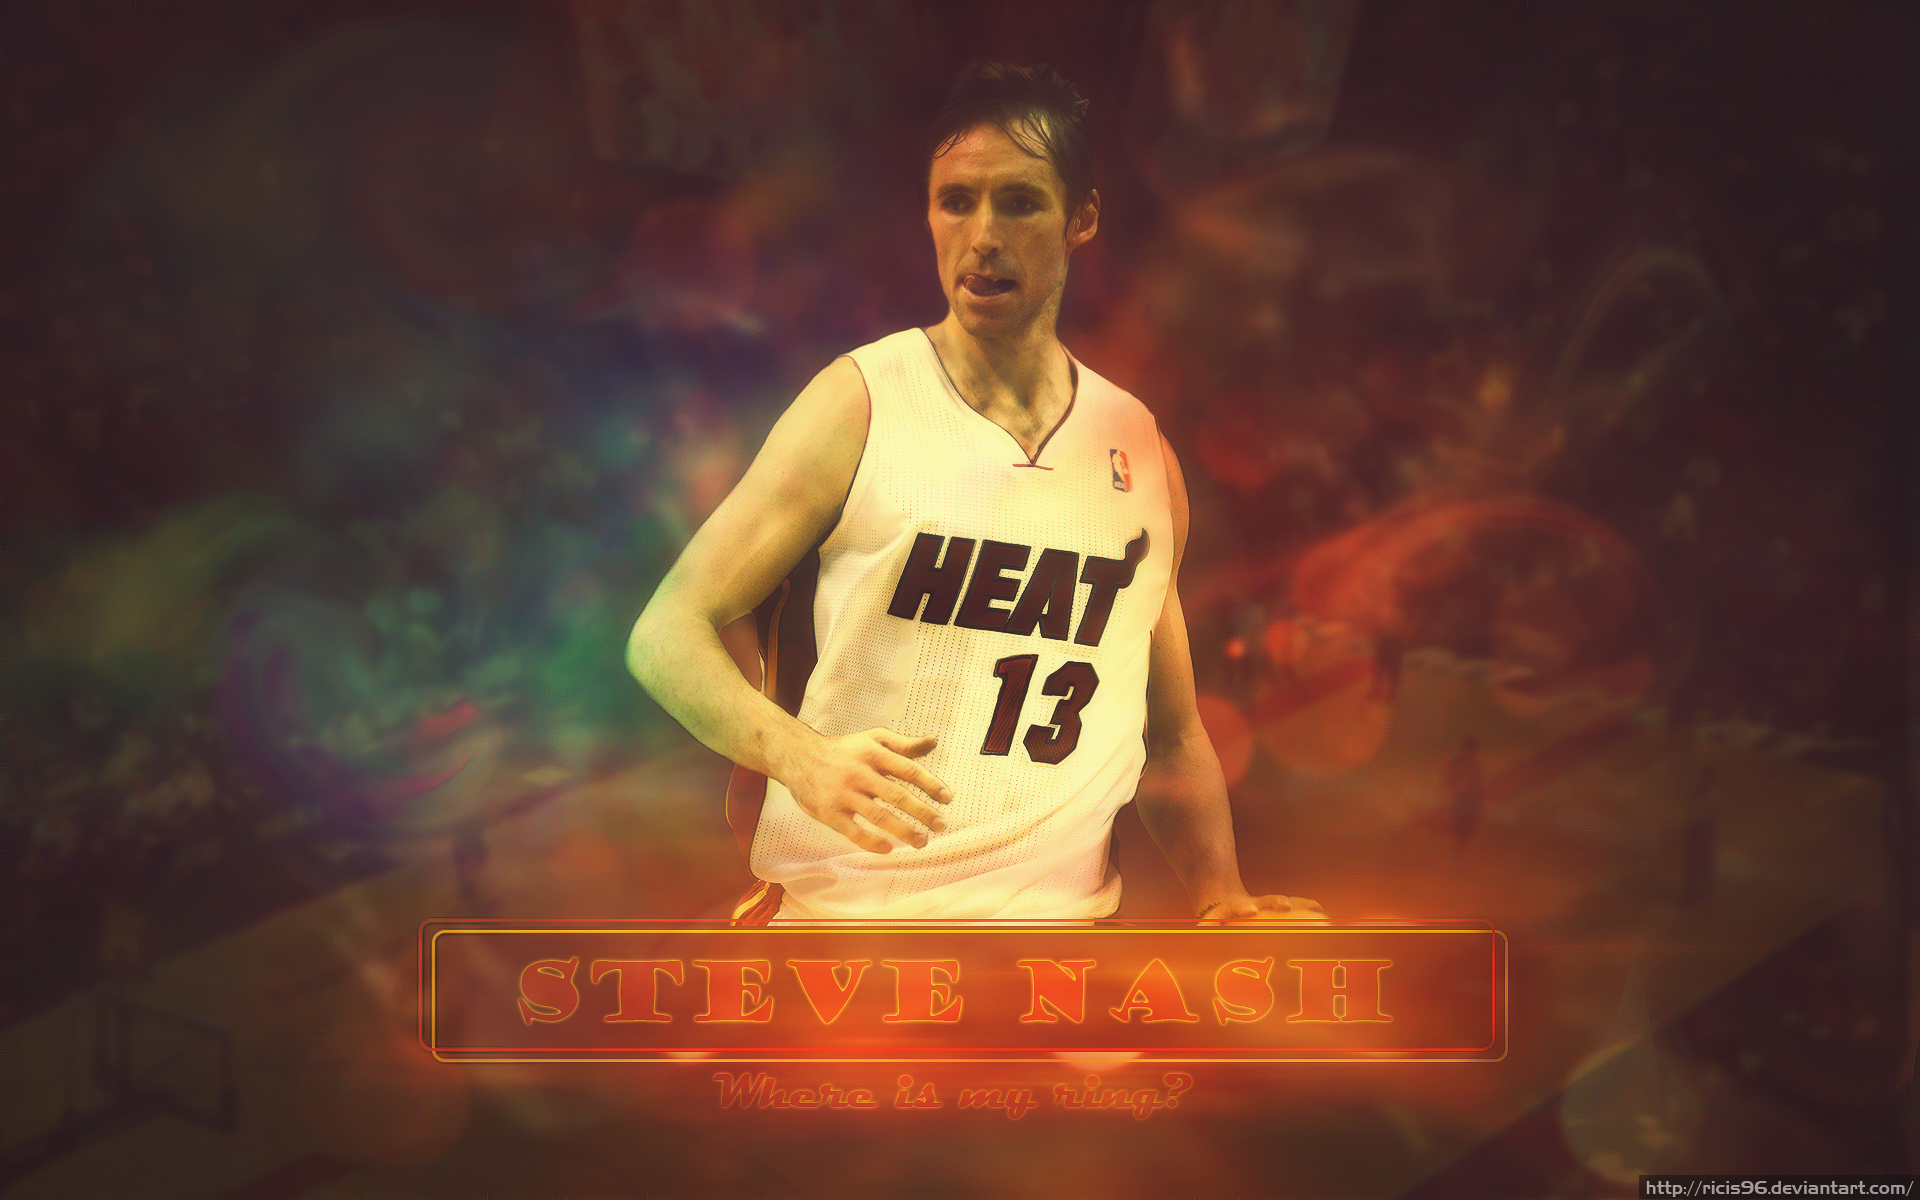 Steve Nash in Miami Heat by ricis96